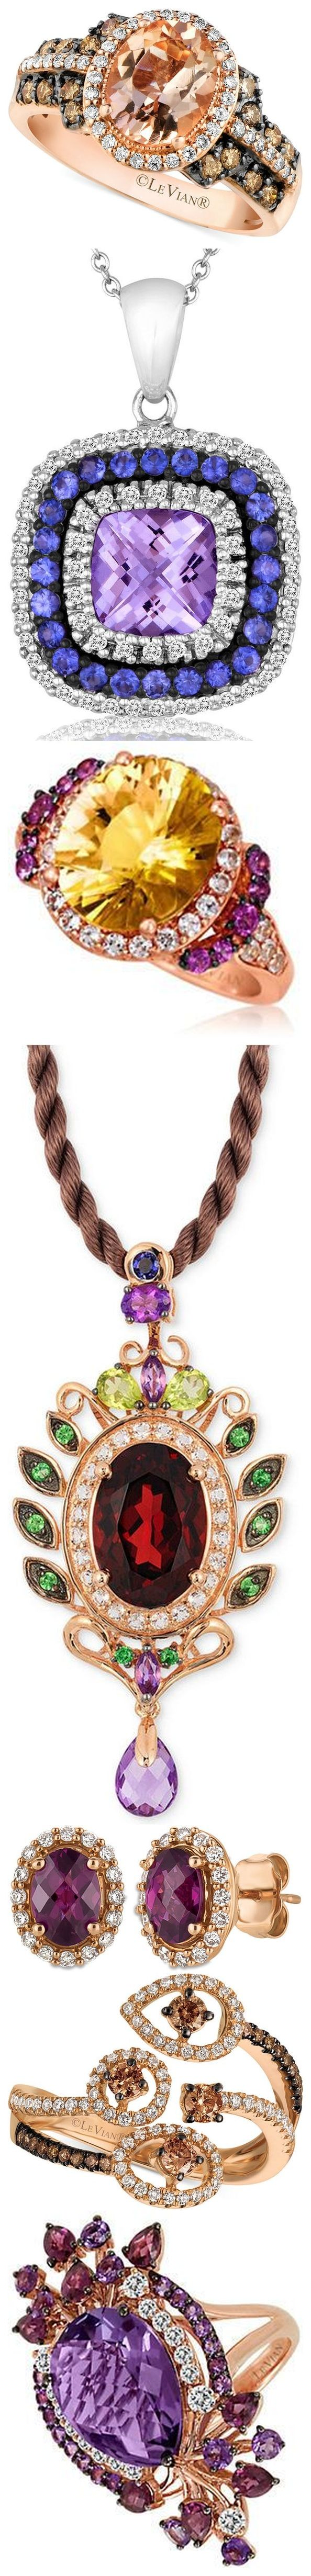 Le Vian a breathtaking line of Jewelry. For more Le Vian checkout my board dedicated to this beautiful line. https://www.pinterest.com/indaboxwitdat/le-vian-a-beautiful-line-of-jewelry/